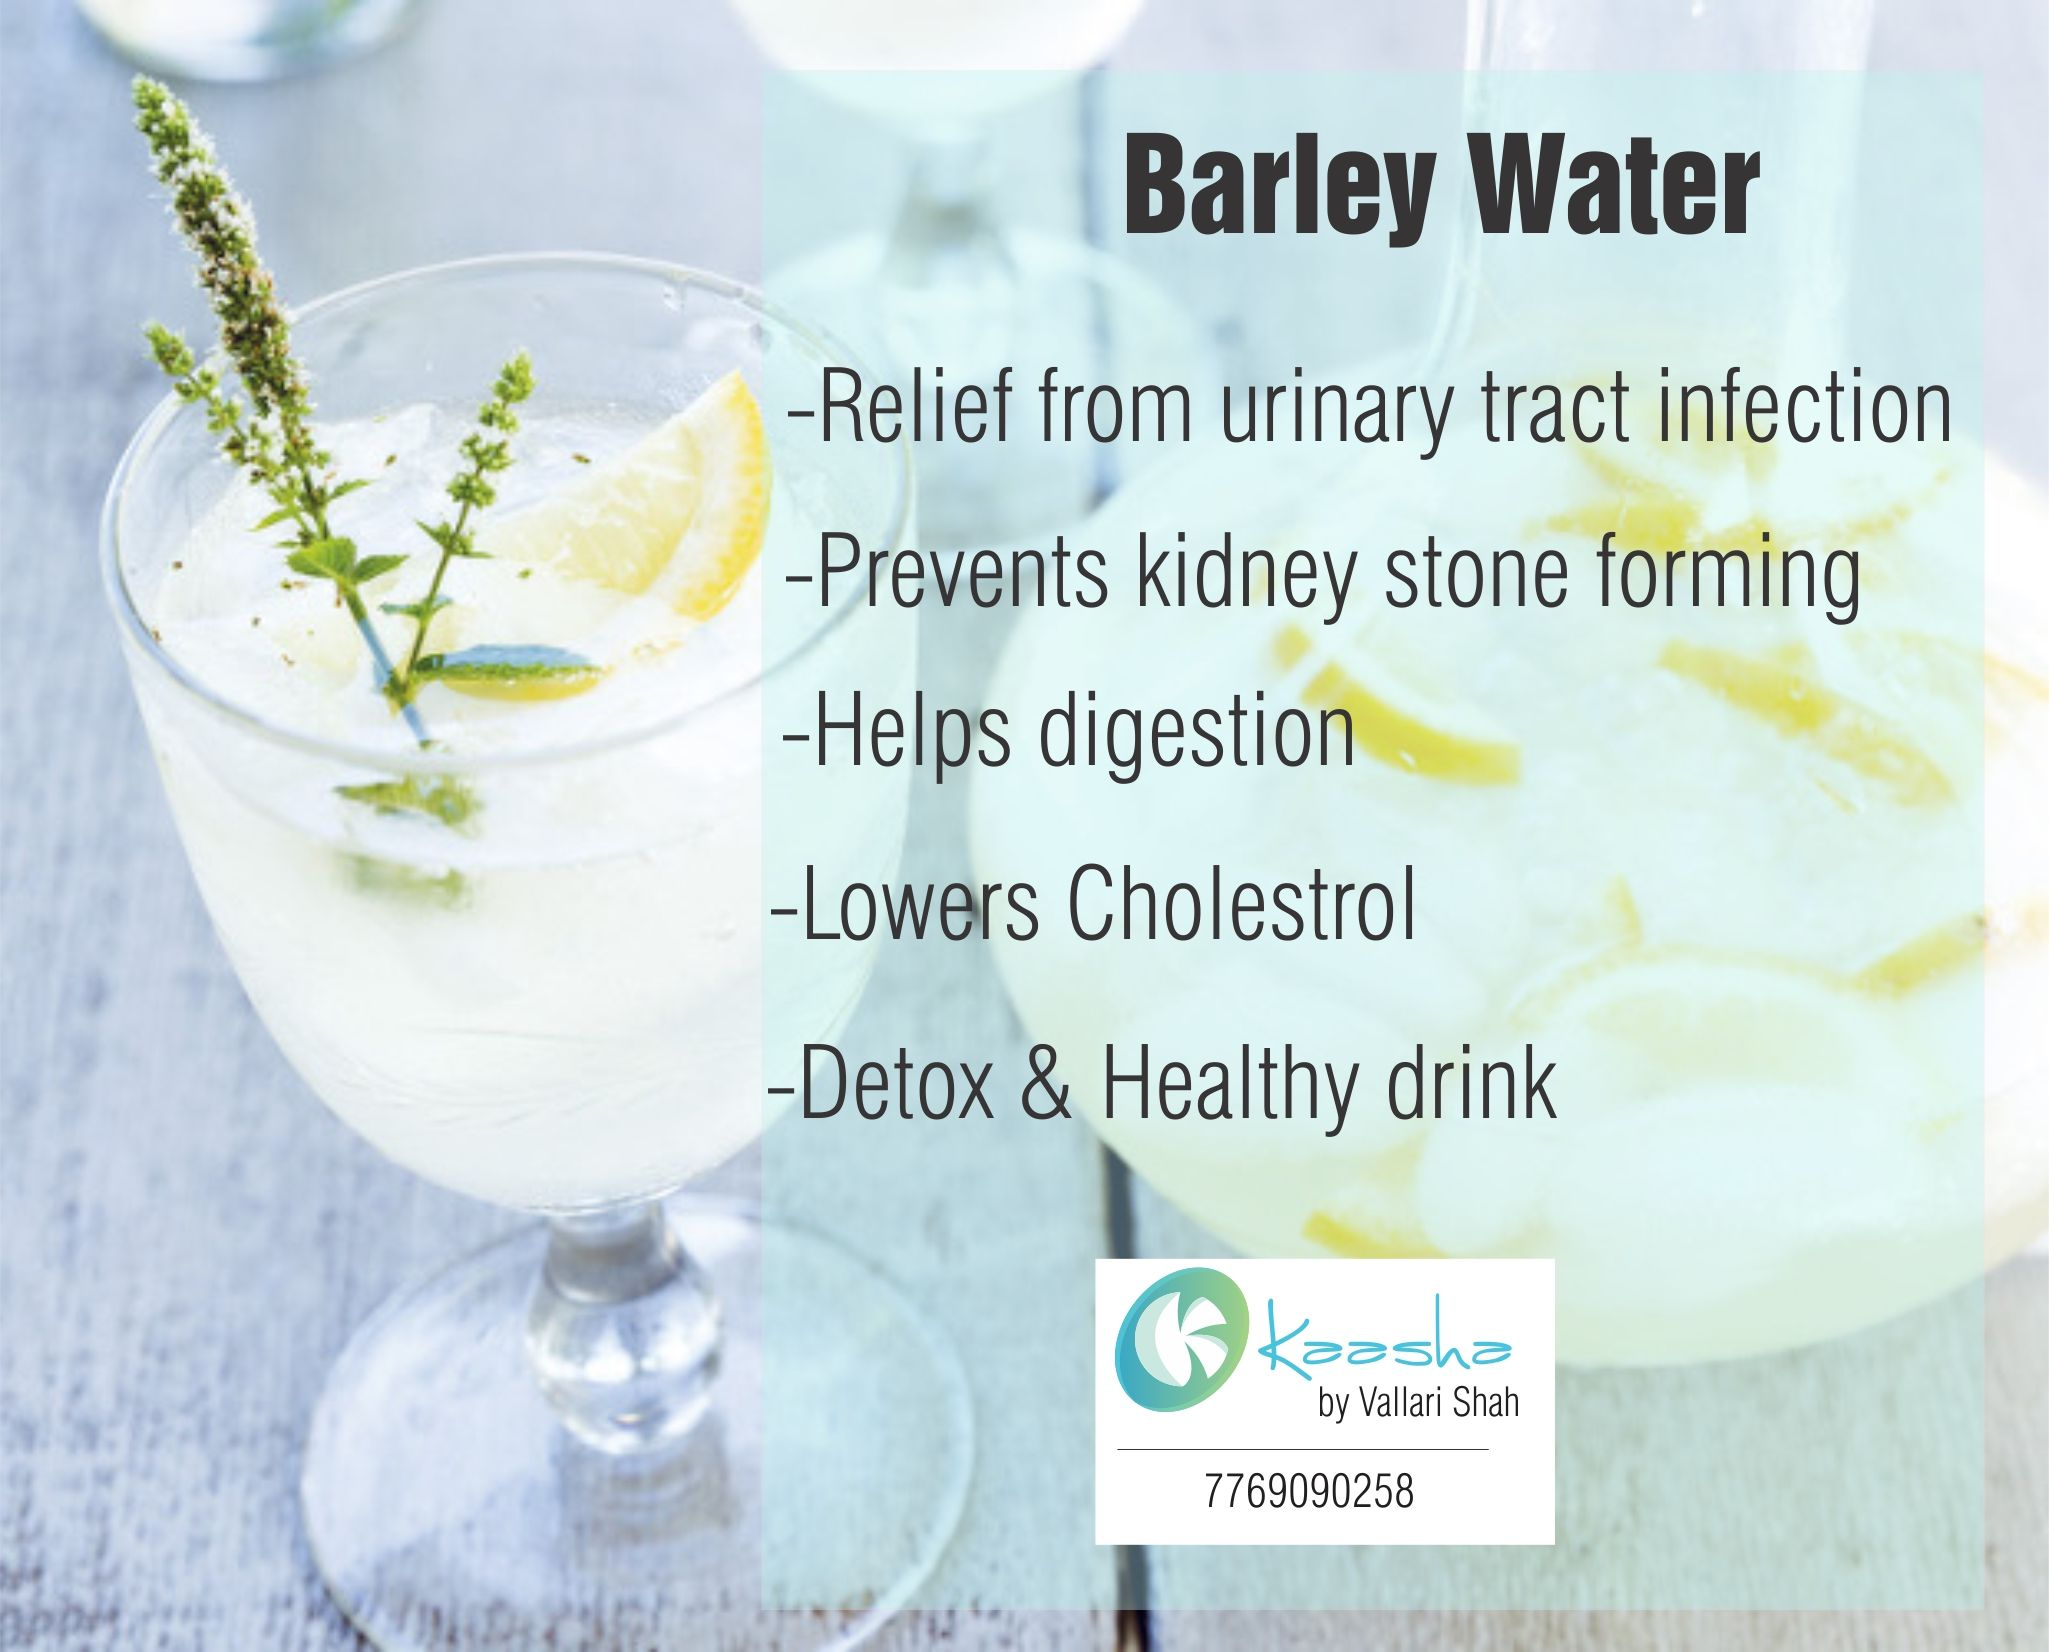 Daily diet for good health - Barley Water An Ancient Remedy Or An Elixir To Good Health Barley Water Is An Incredible Beverage That Our Ancestors Included In Their Daily Diet